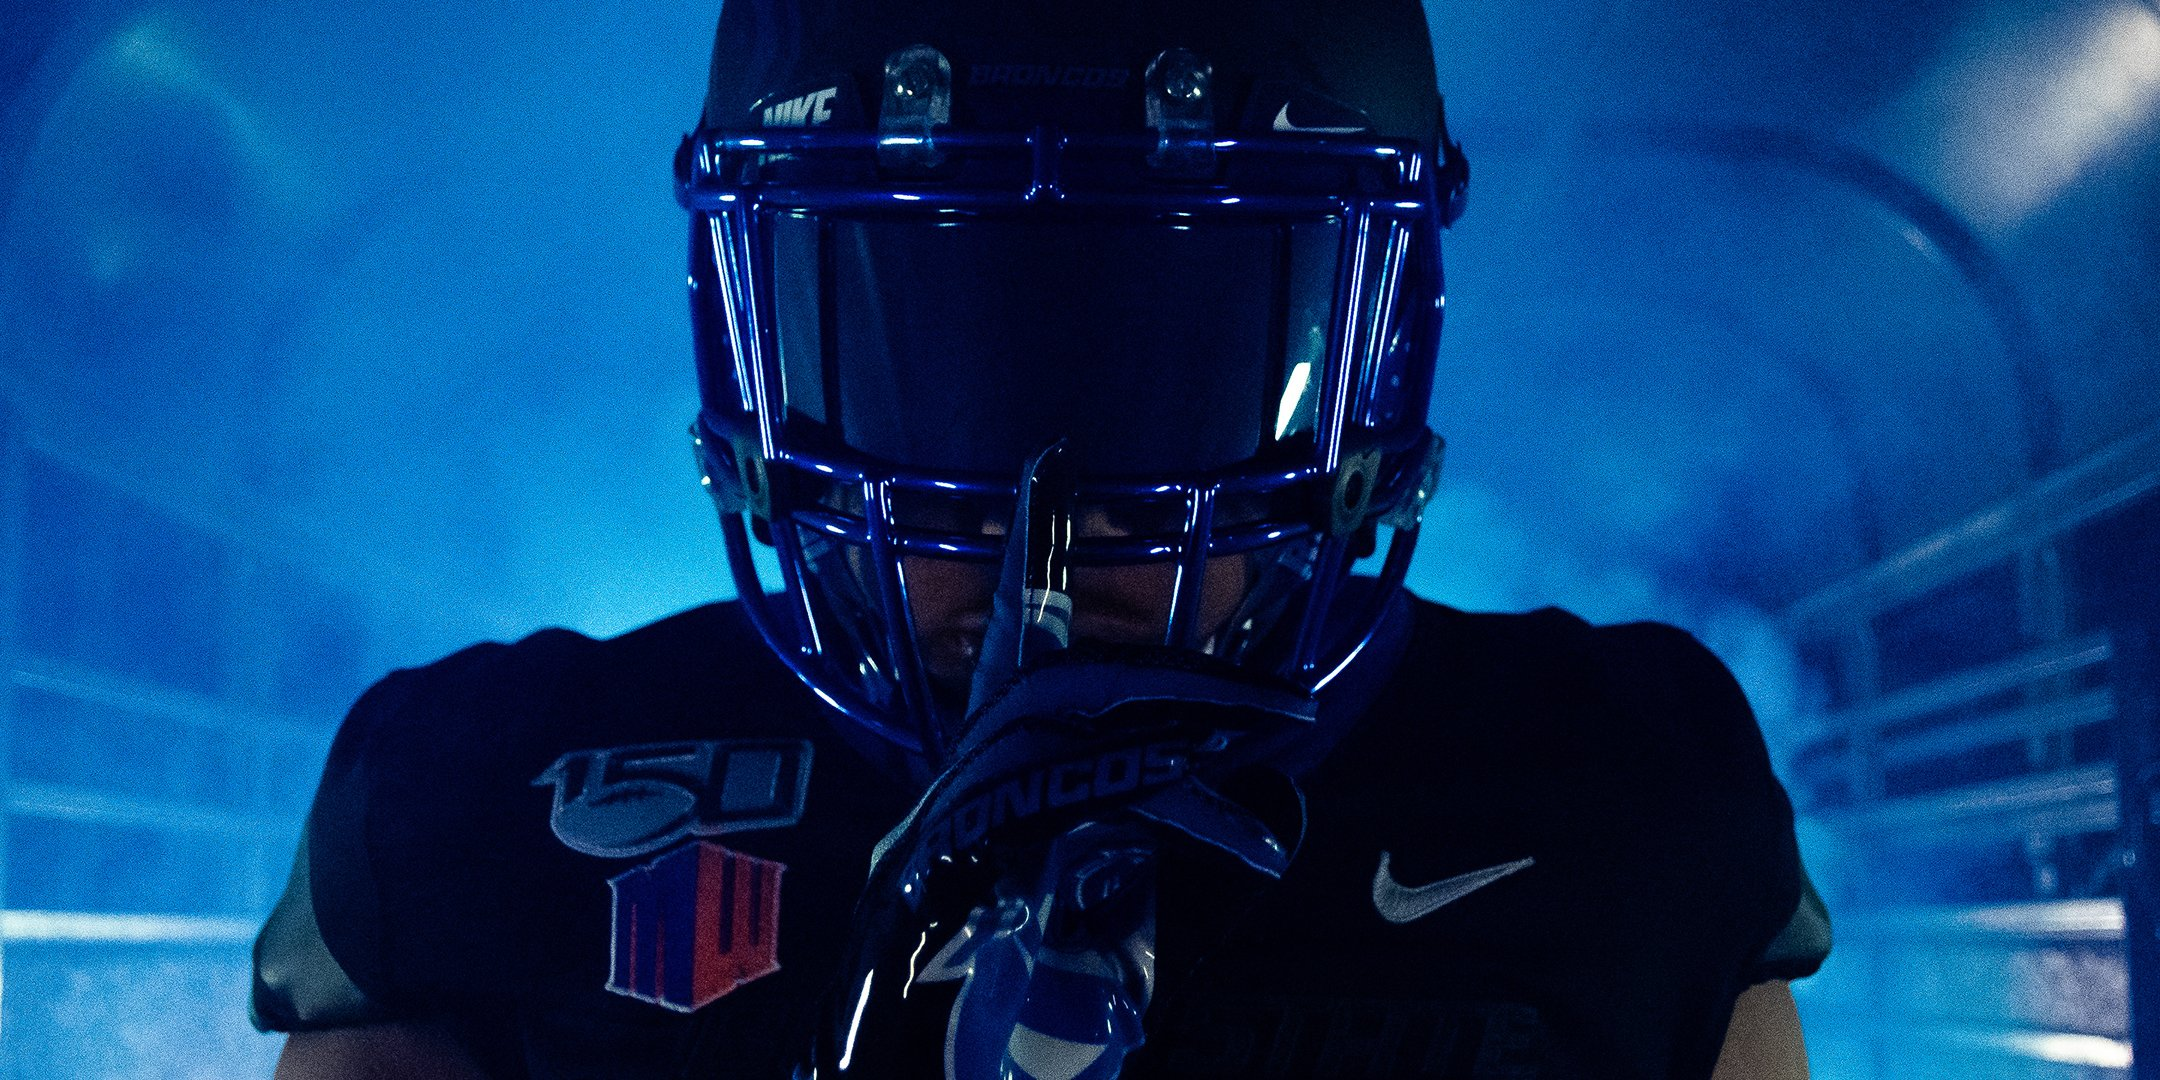 b89b3a03 Boise State Blackout Uniform — UNISWAG